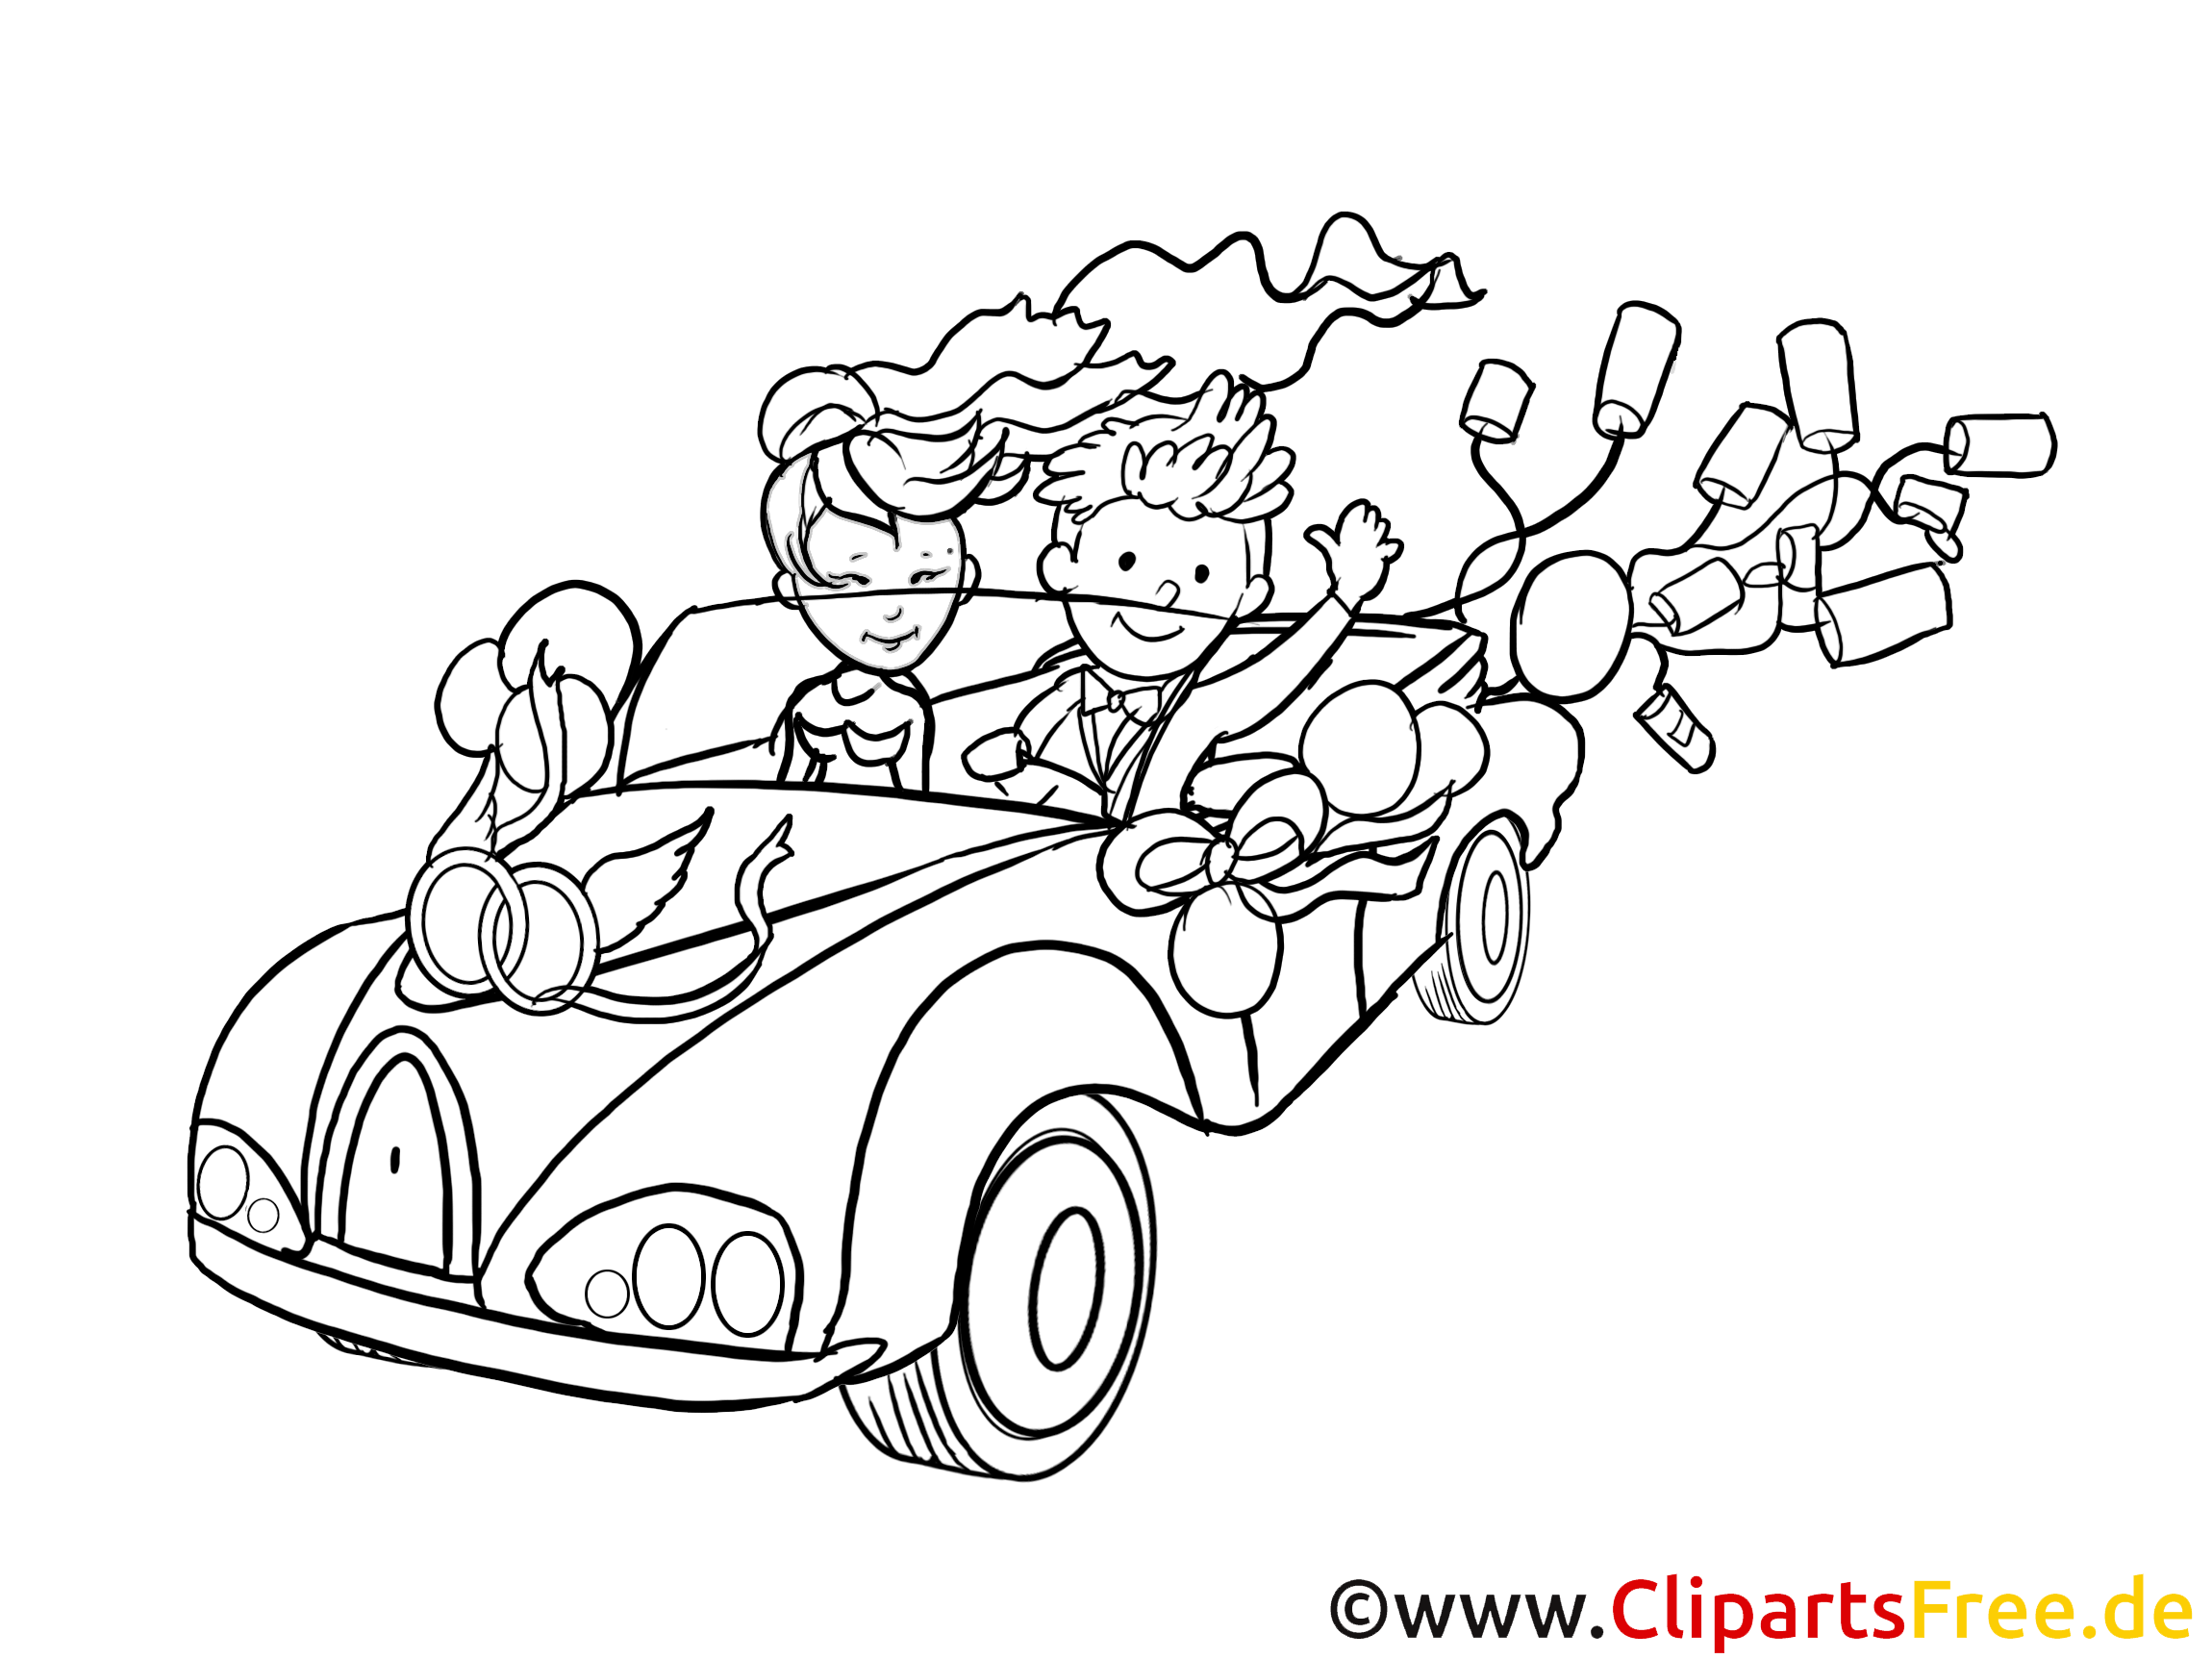 Voiture coloriage mariage cliparts t l charger mariage dessin picture image graphic - Dessin voiture mariage ...